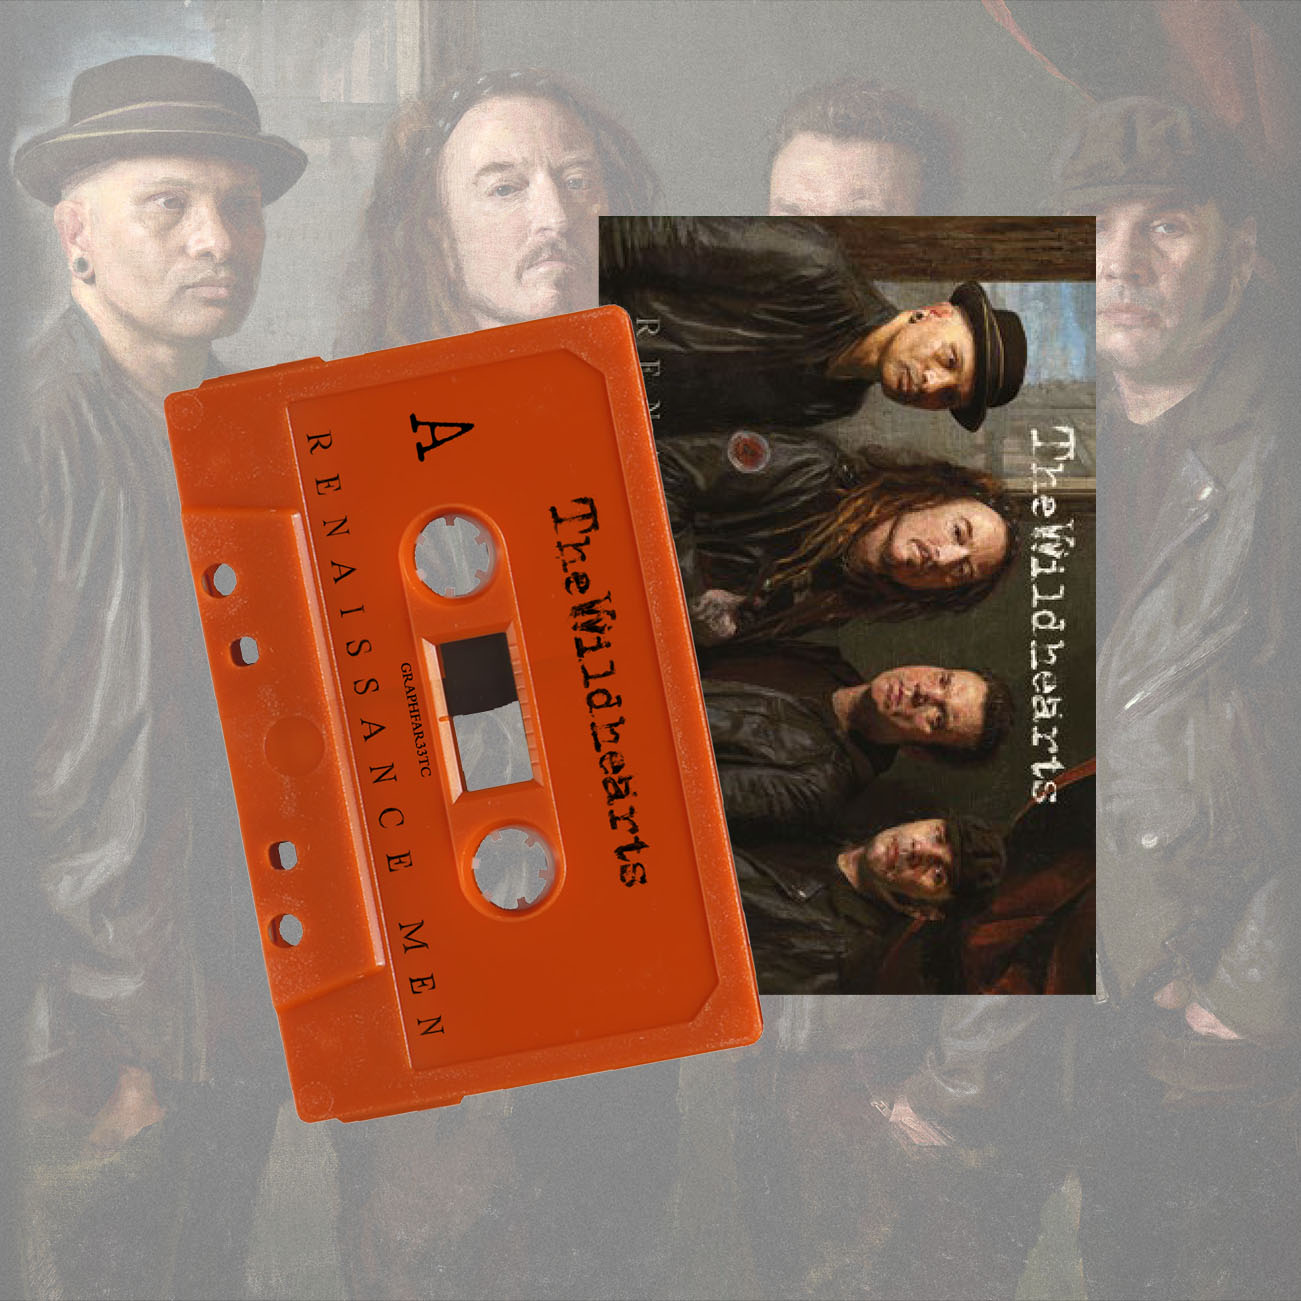 The Wildhearts - 'Renaissance Men' Limited Edition Cassette Tape - The Wildhearts